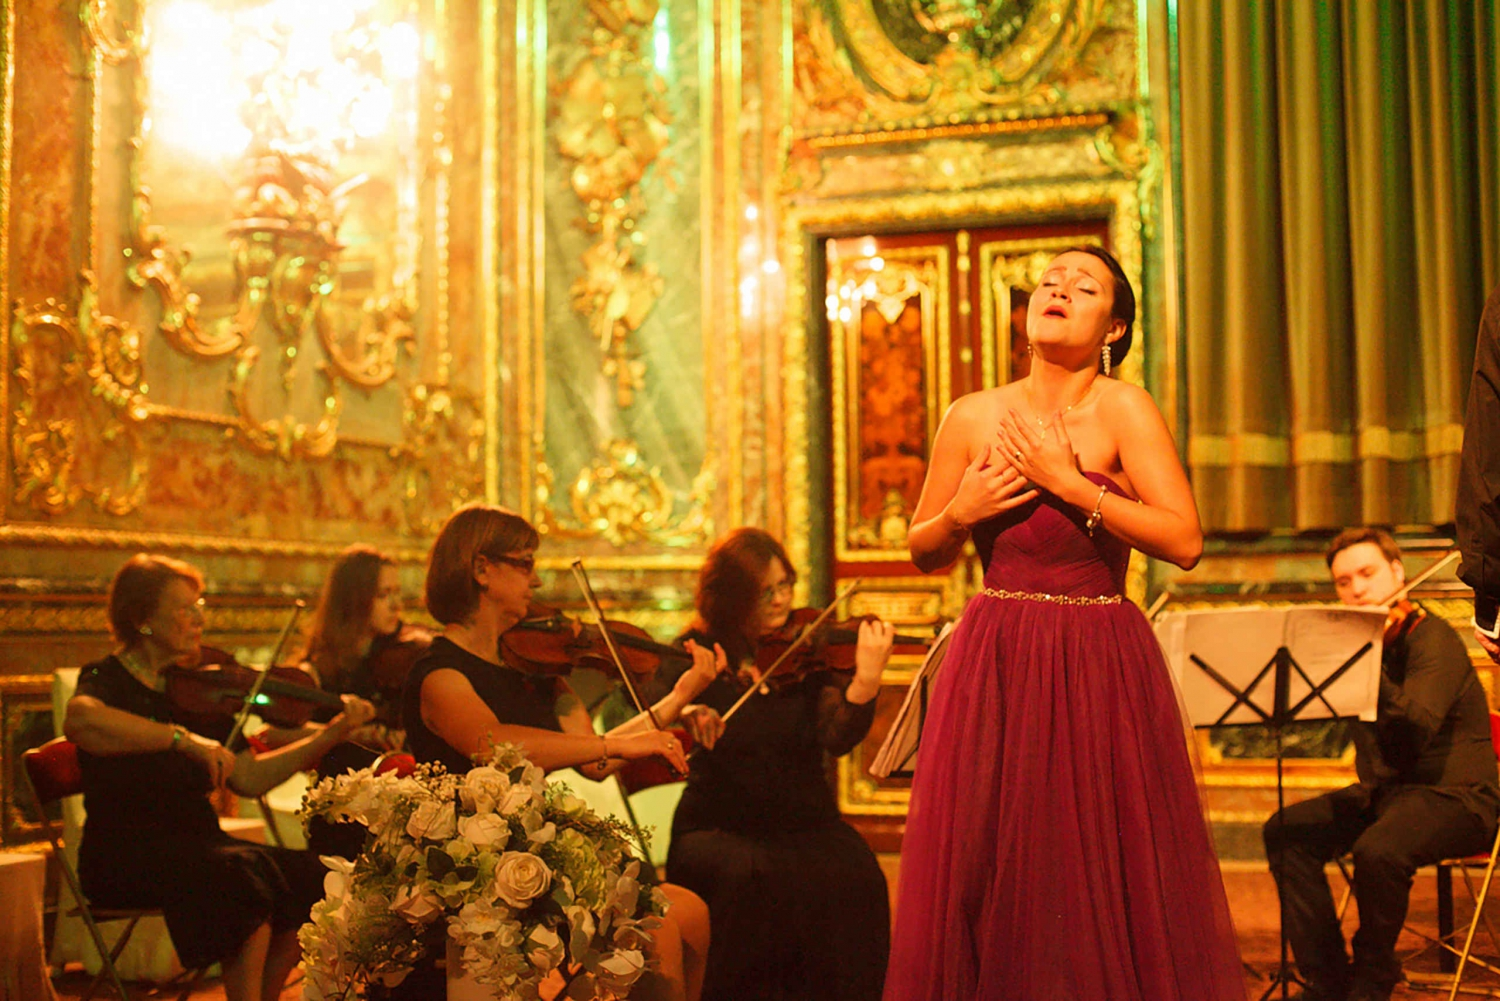 St. Petersburg: Classical Russian Music Concert in a Palace